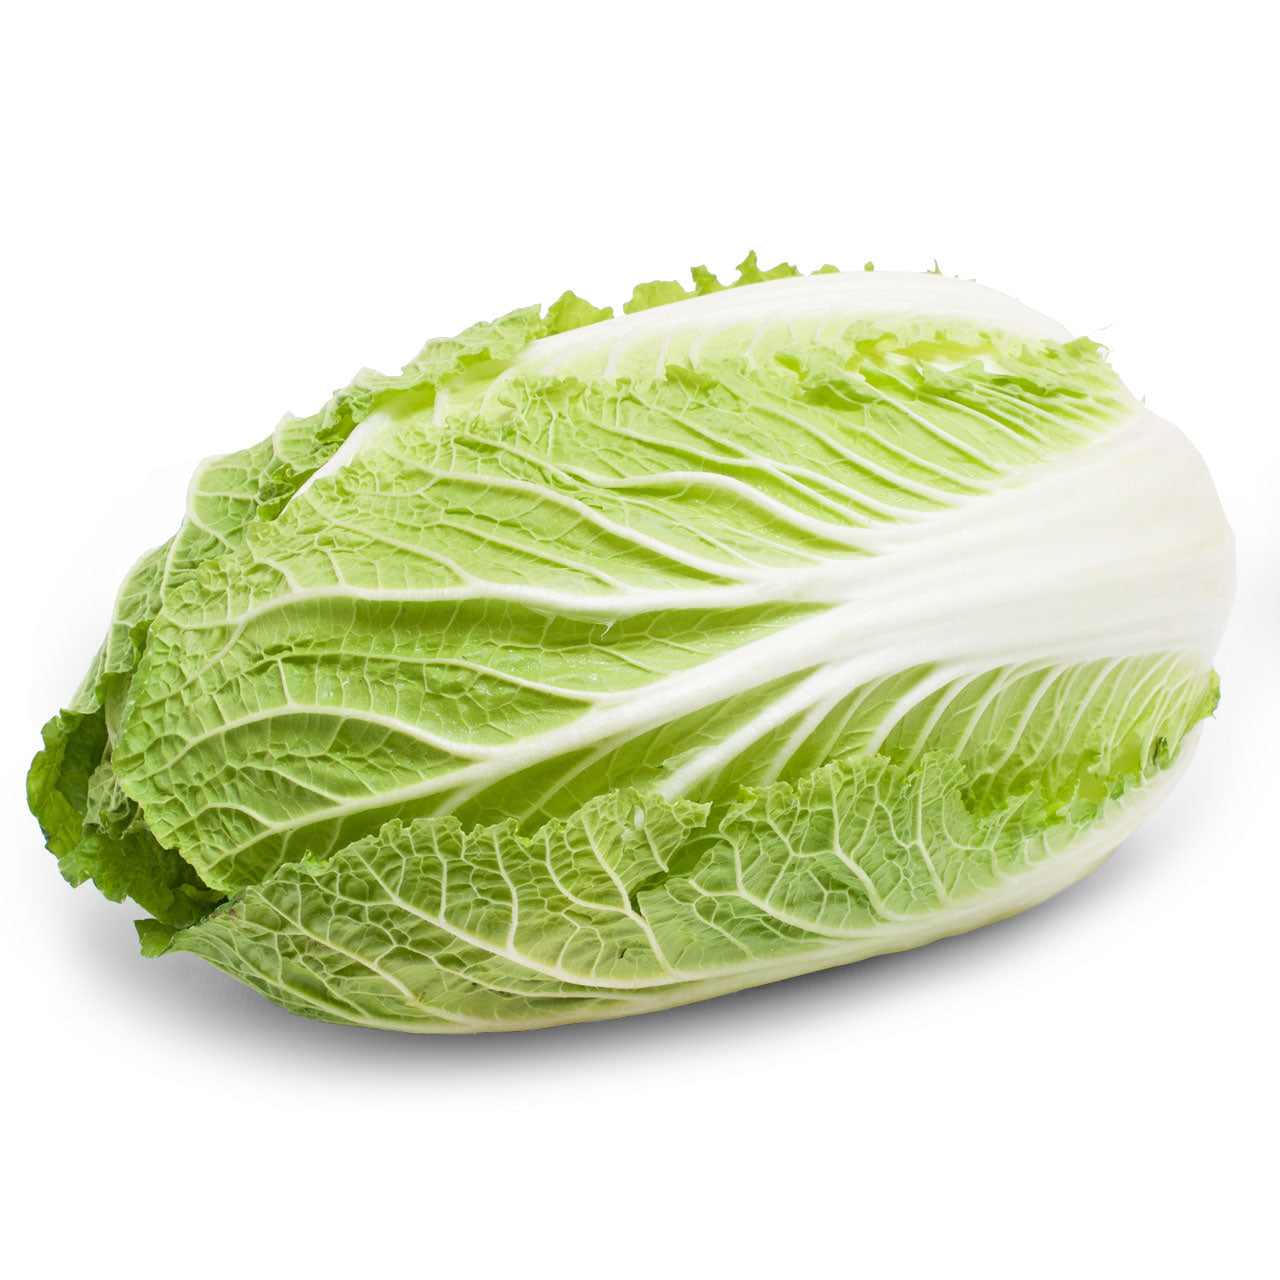 Napa Cabbage Hakusai Grocery Delivery to NYC NJ